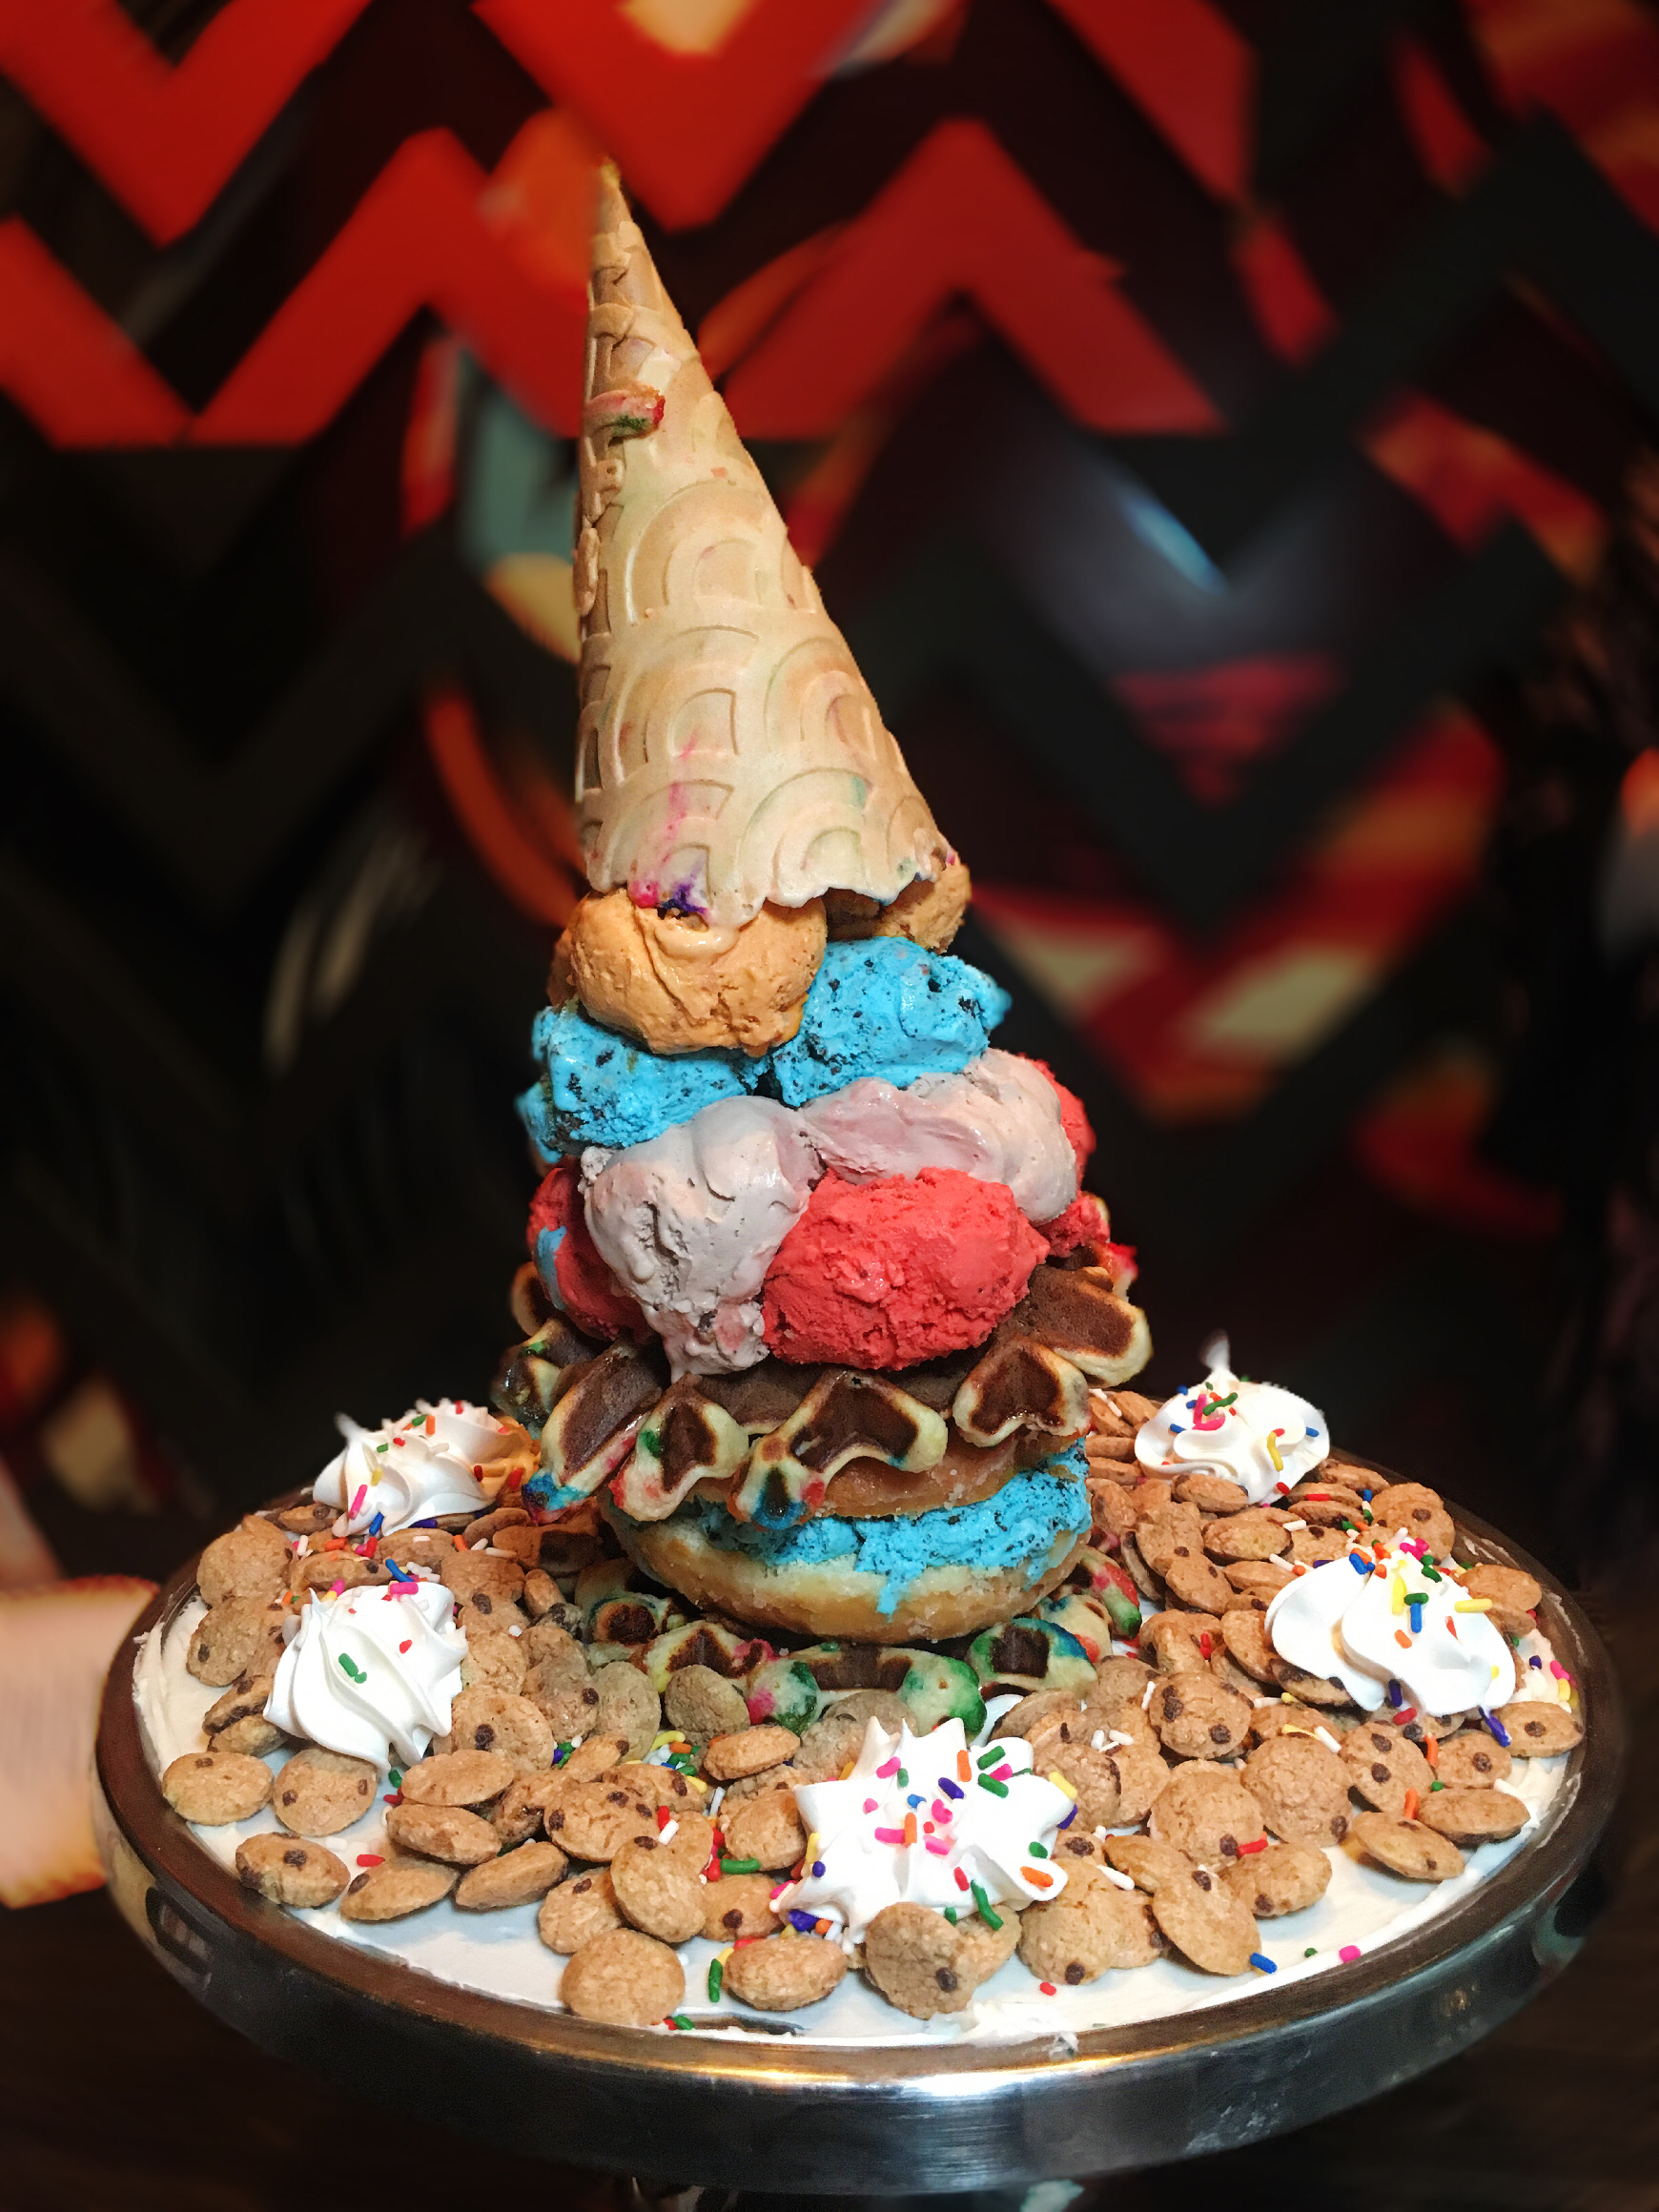 - Starting from the bottom, we have Stuffed Ice Cream's cookie monster cruff sandwiched between two of Clinton Hall's birthday cake waffles, then stacked with scoops of Red Velvet, Ferrero Rocher, Cookie Monster, and Snickerdoodle ice cream, and finally topped with a birthday sugar cone. If that wasn't enough sugar, the whole platter is decorated with frosting, sprinkles, whipped cream, and cookie crisp cereal.